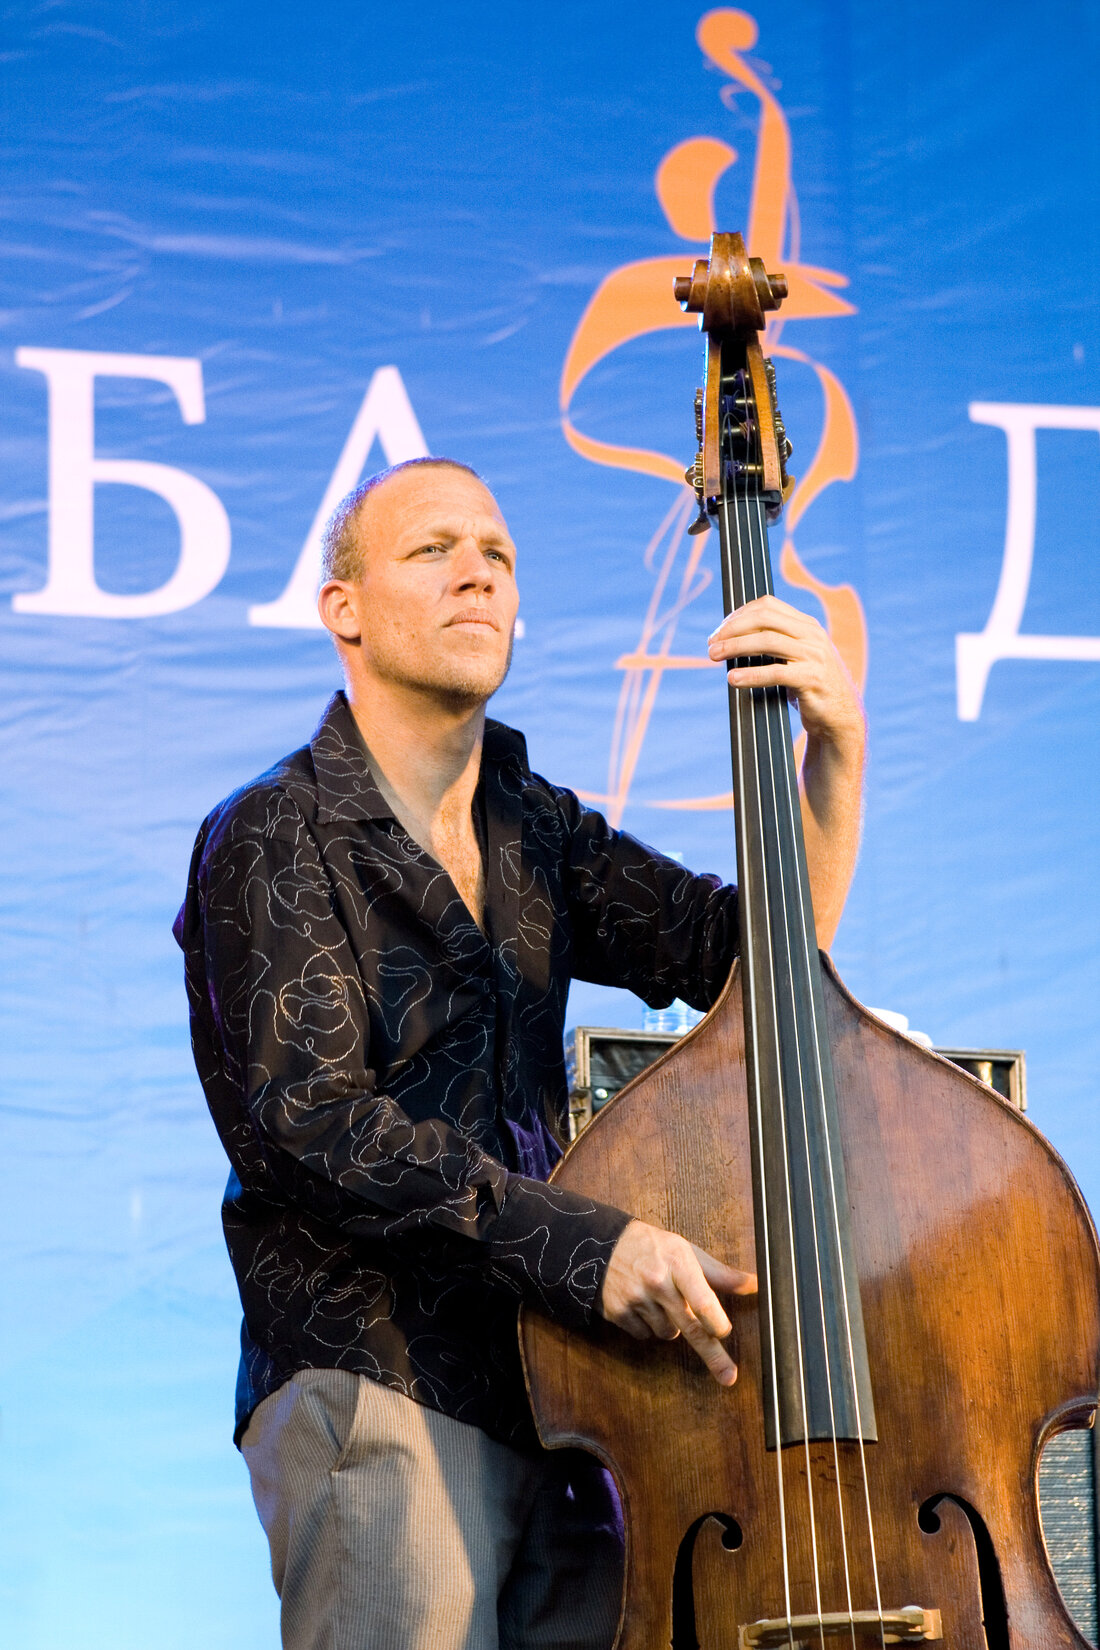 Avishai Cohen jazz bass guitarist musician portrait photo